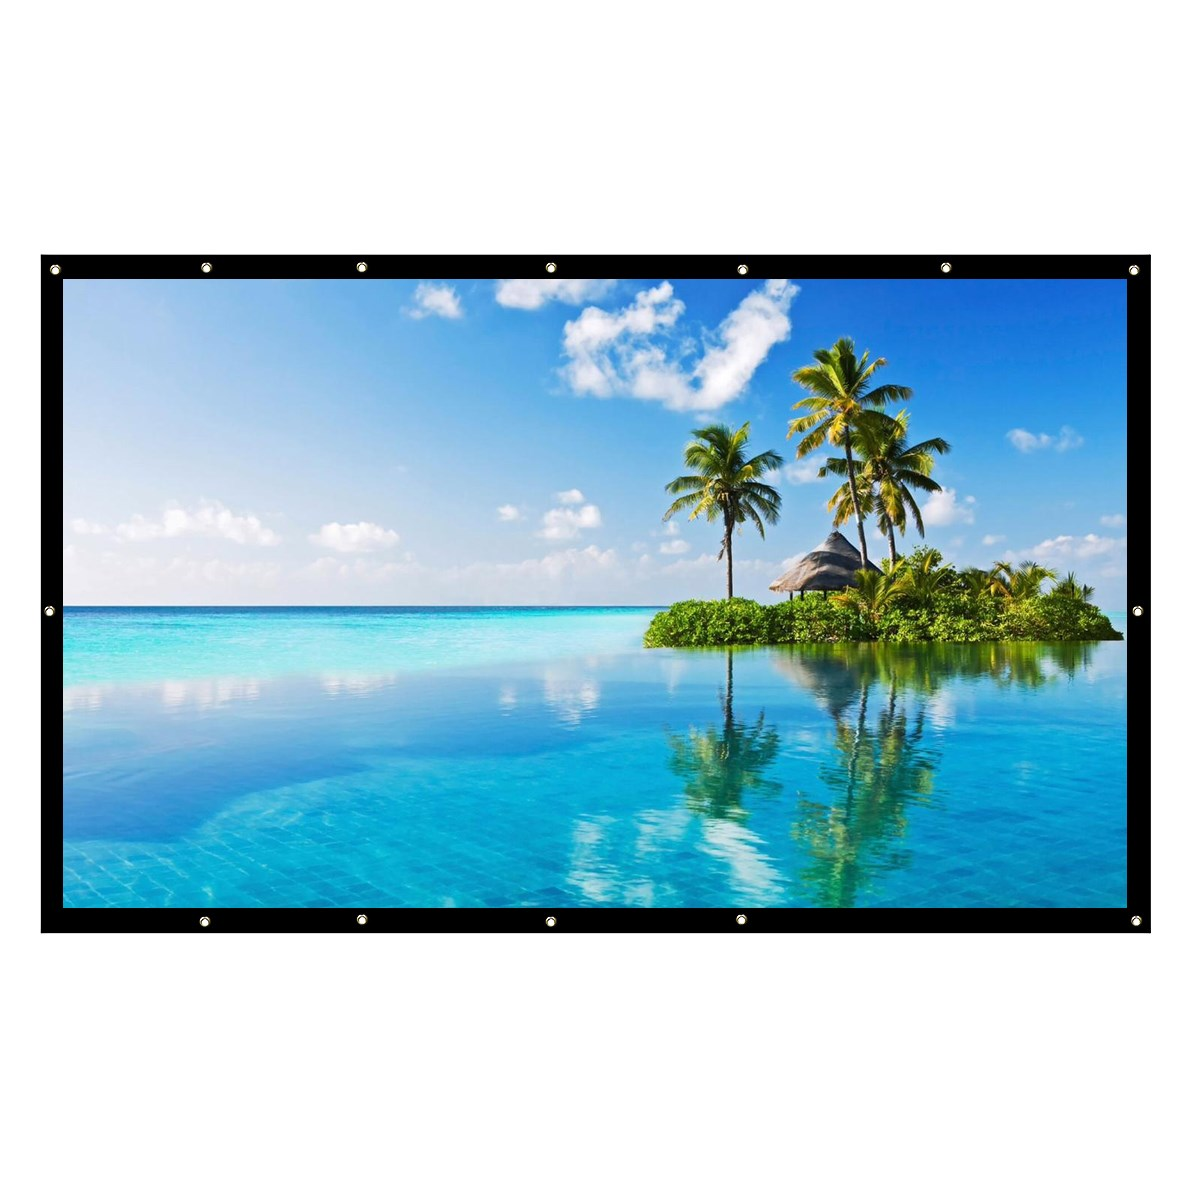 Foldable HD 200 inche Projector Screen 16:9 4:3 Wall Mounted For HD Projector Home Theater Cinema Movies Party newpal 150 inch projector screen 4 3 16 9 foldable projector screen for outdoor and home cinema movies